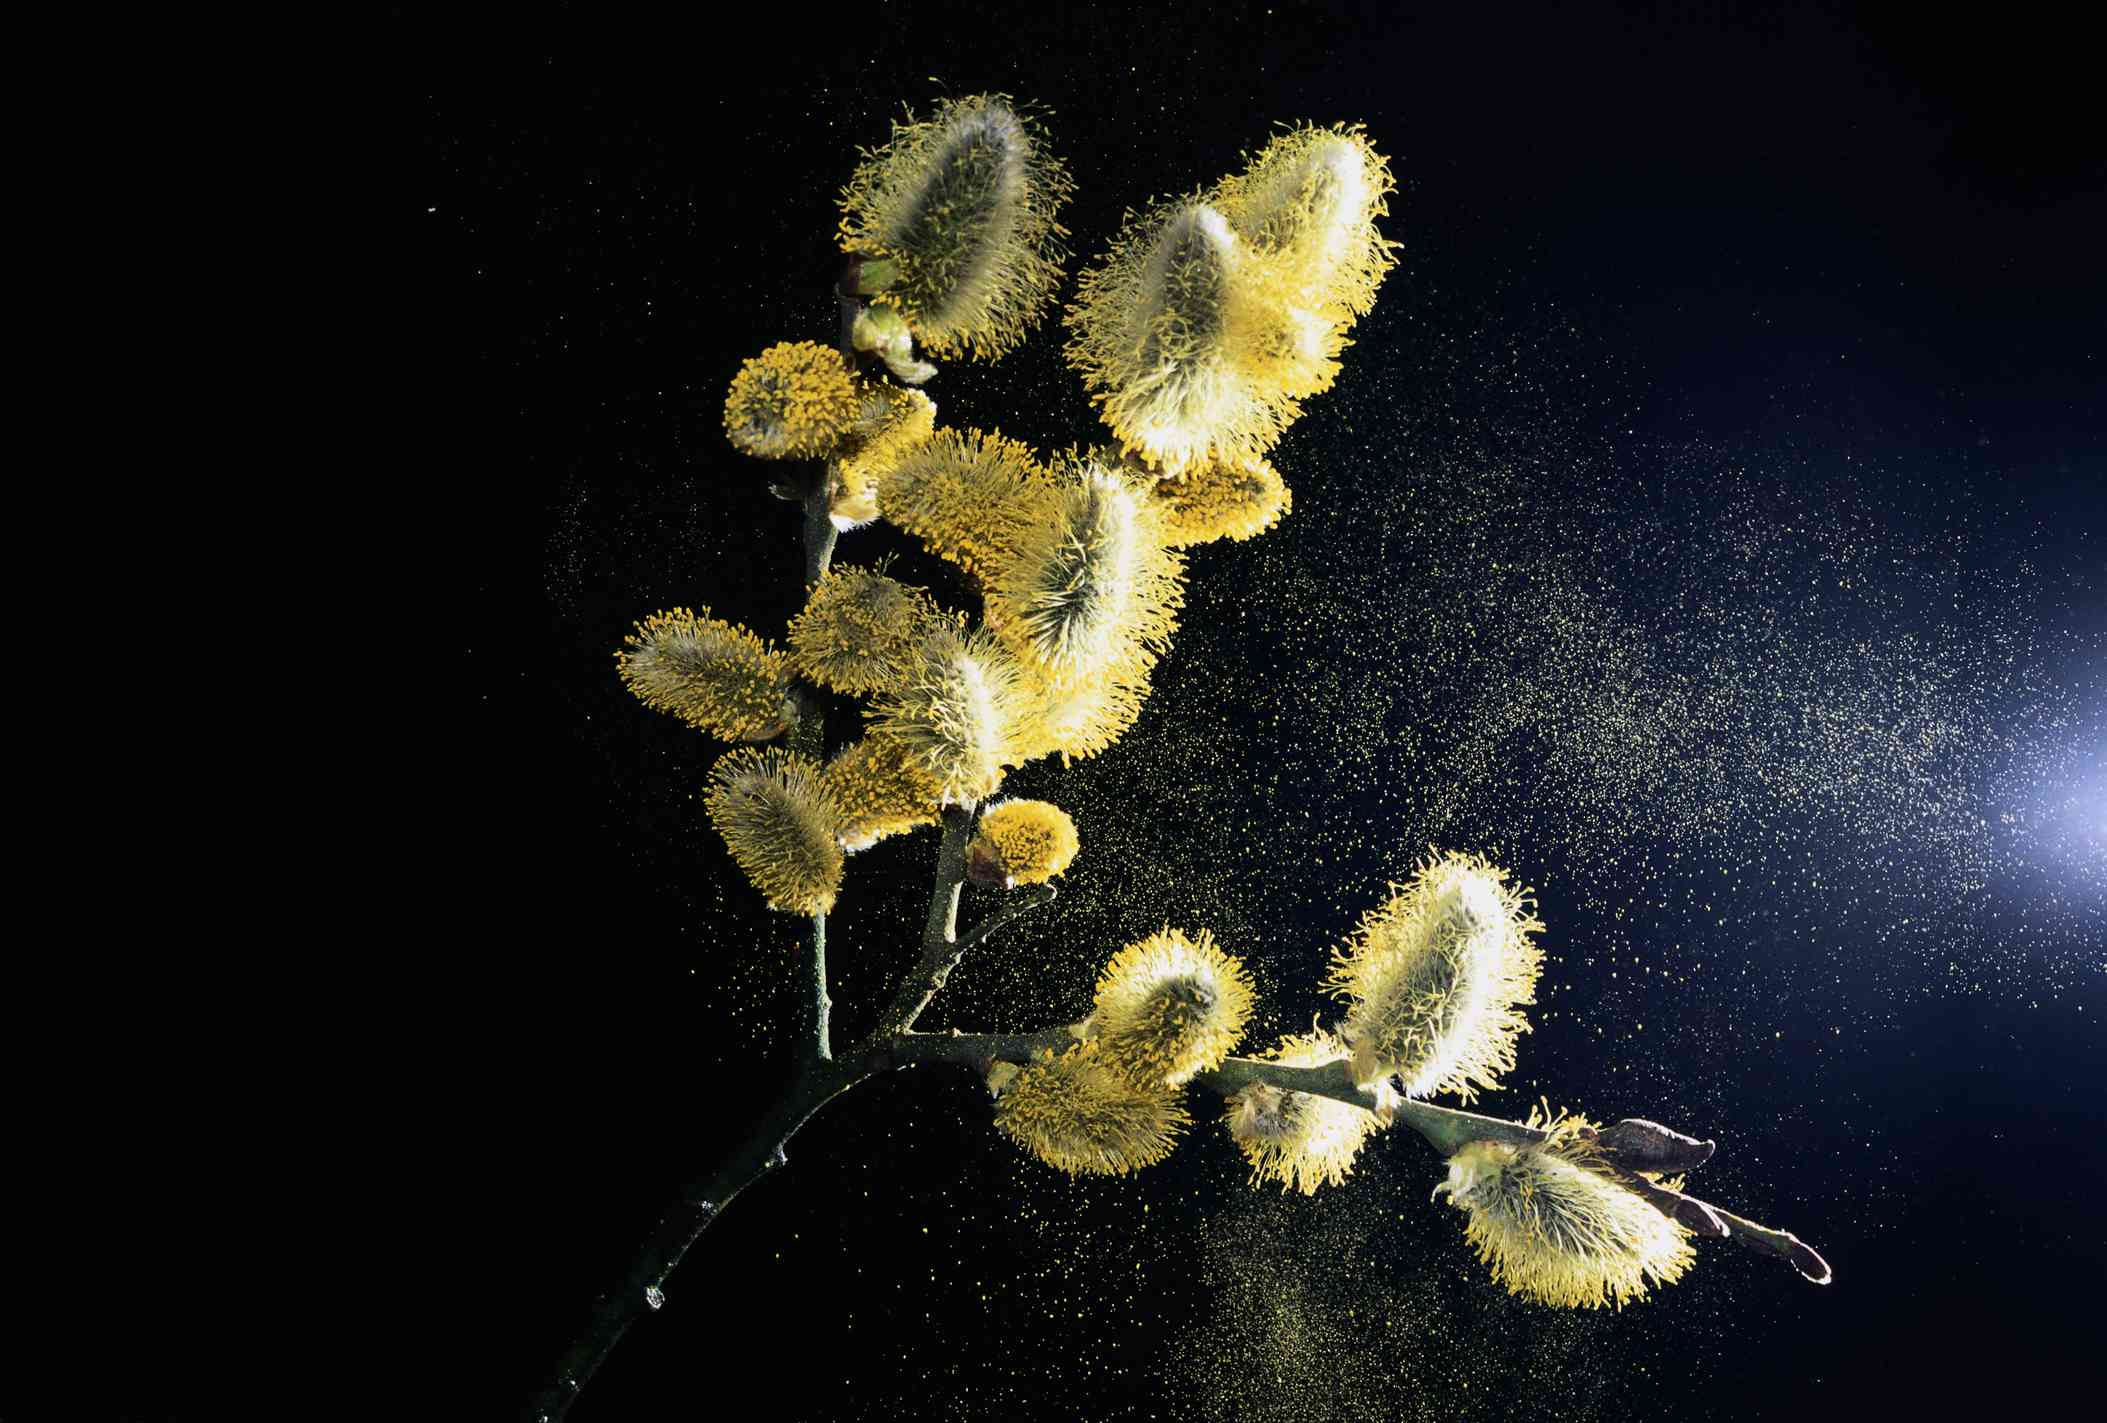 A close up of a branch of a willow tree releasing pollen.